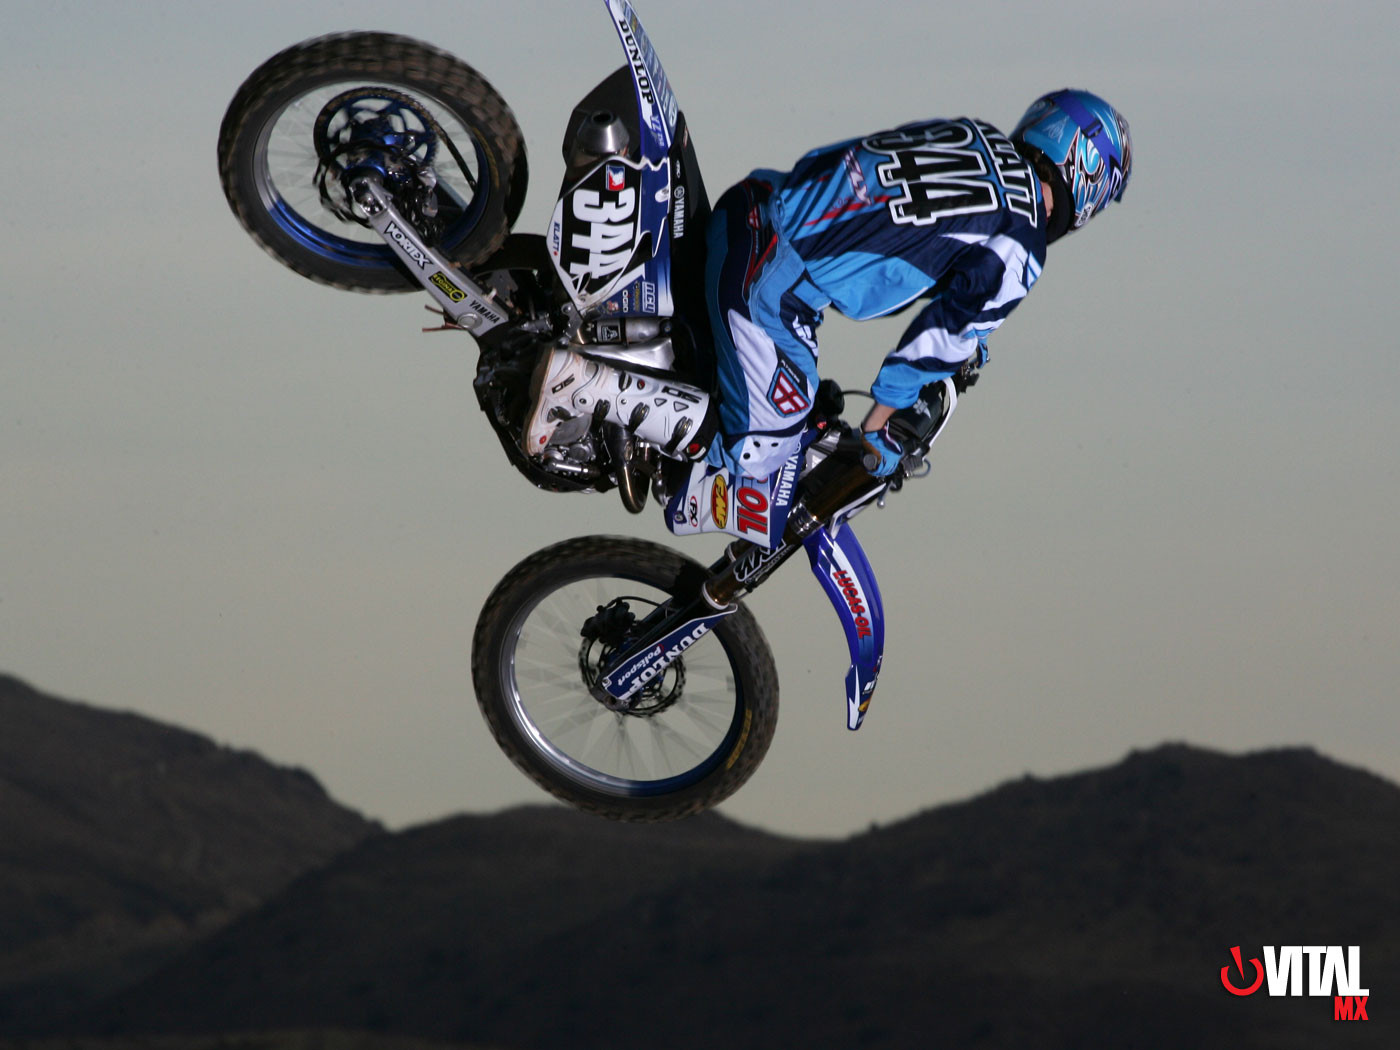 Dusty Klatt 1400 x 1050 - 2006 Lucas Oil Yamaha Wallpapers - Motocross Pictures - Vital MX